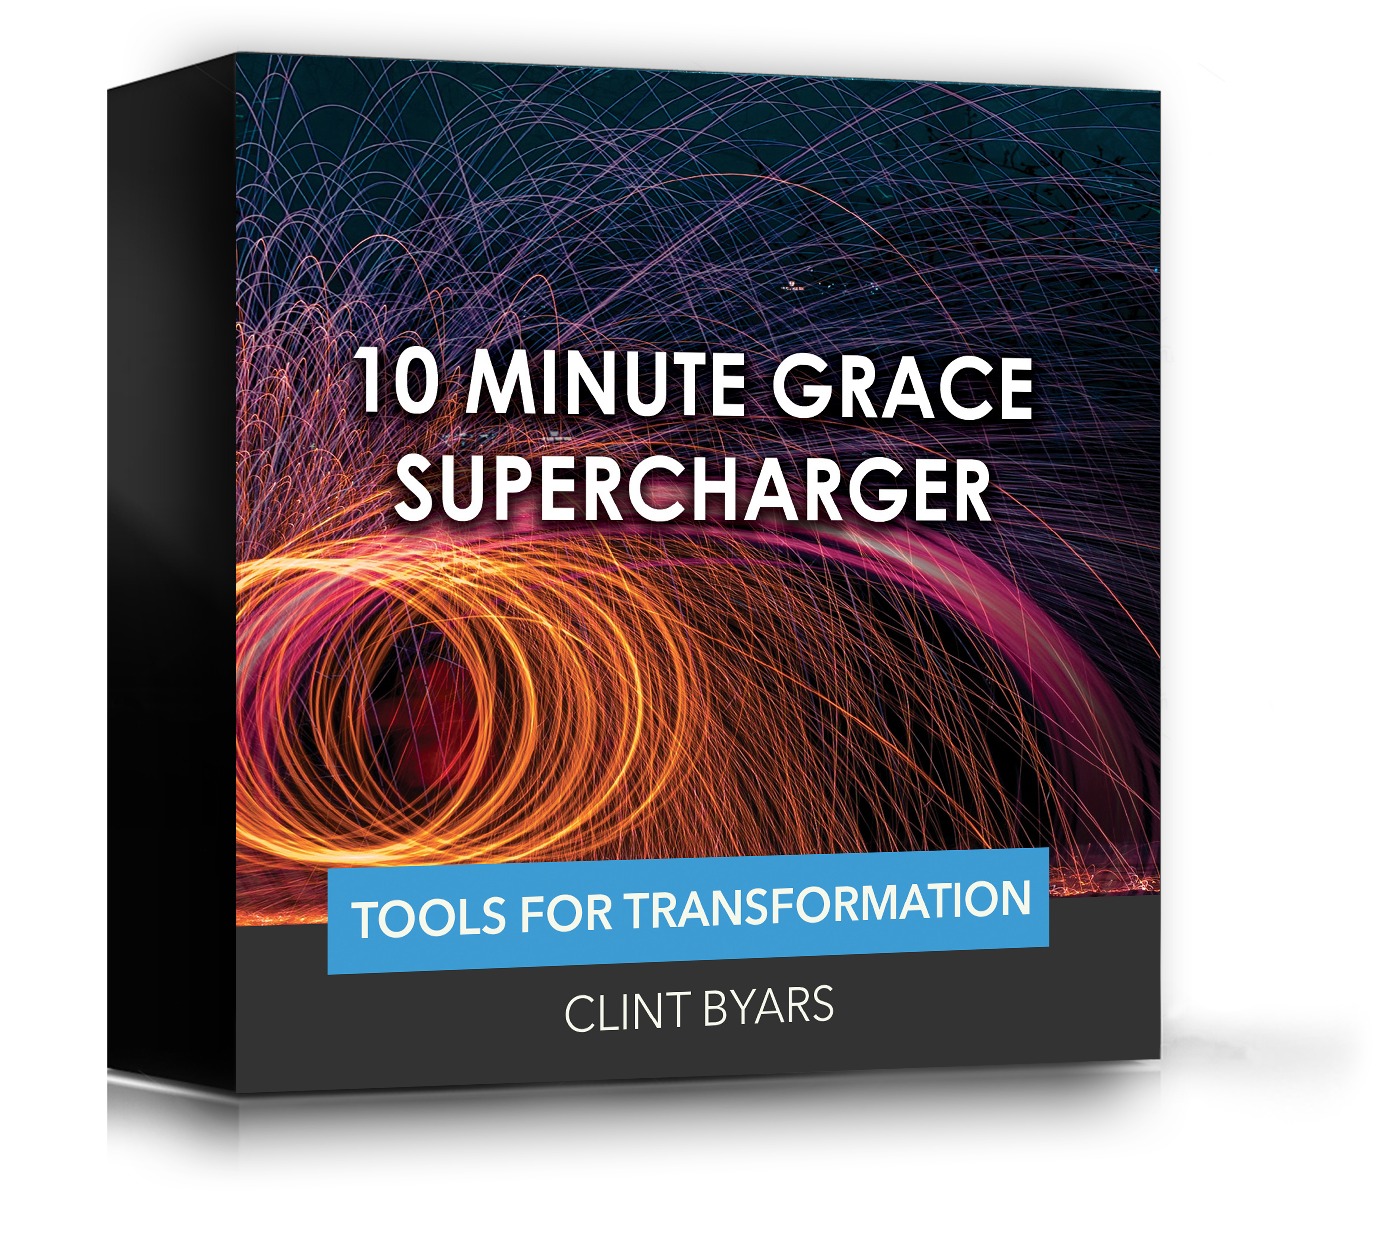 Need a boost? Listen to this 10 minute meditation when you're feeling low or facing temptation. It only takes 2 minutes to change your emotions. This tool will help you shift your focus away from the distraction and choose God's power within. Start your day with a 10 Minute Grace Supercharge!  CLICK FOR MORE